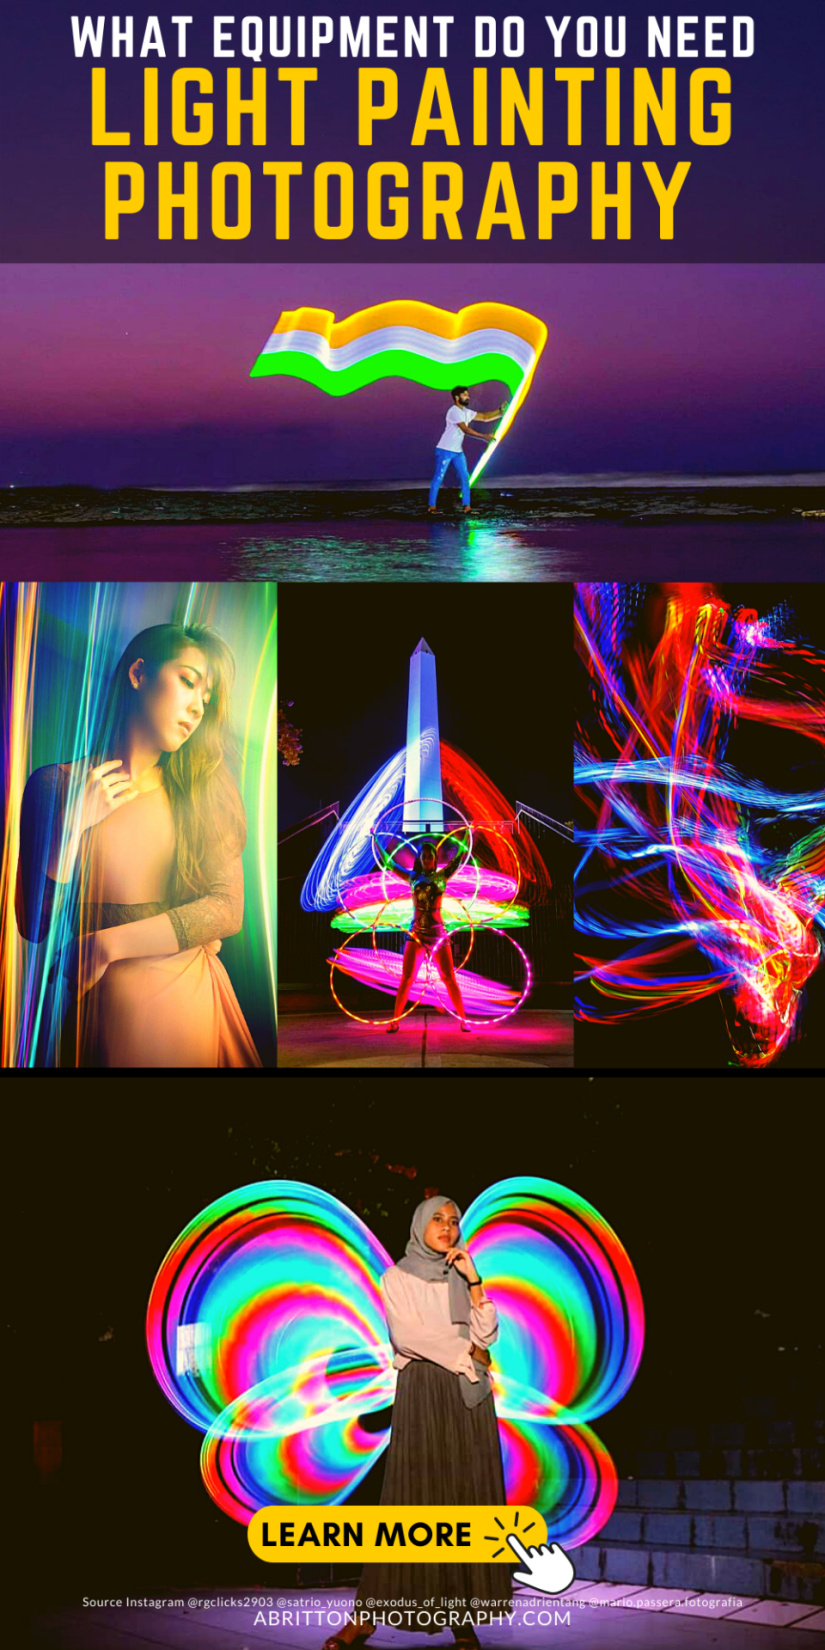 Equipment of light painting photography camera settings